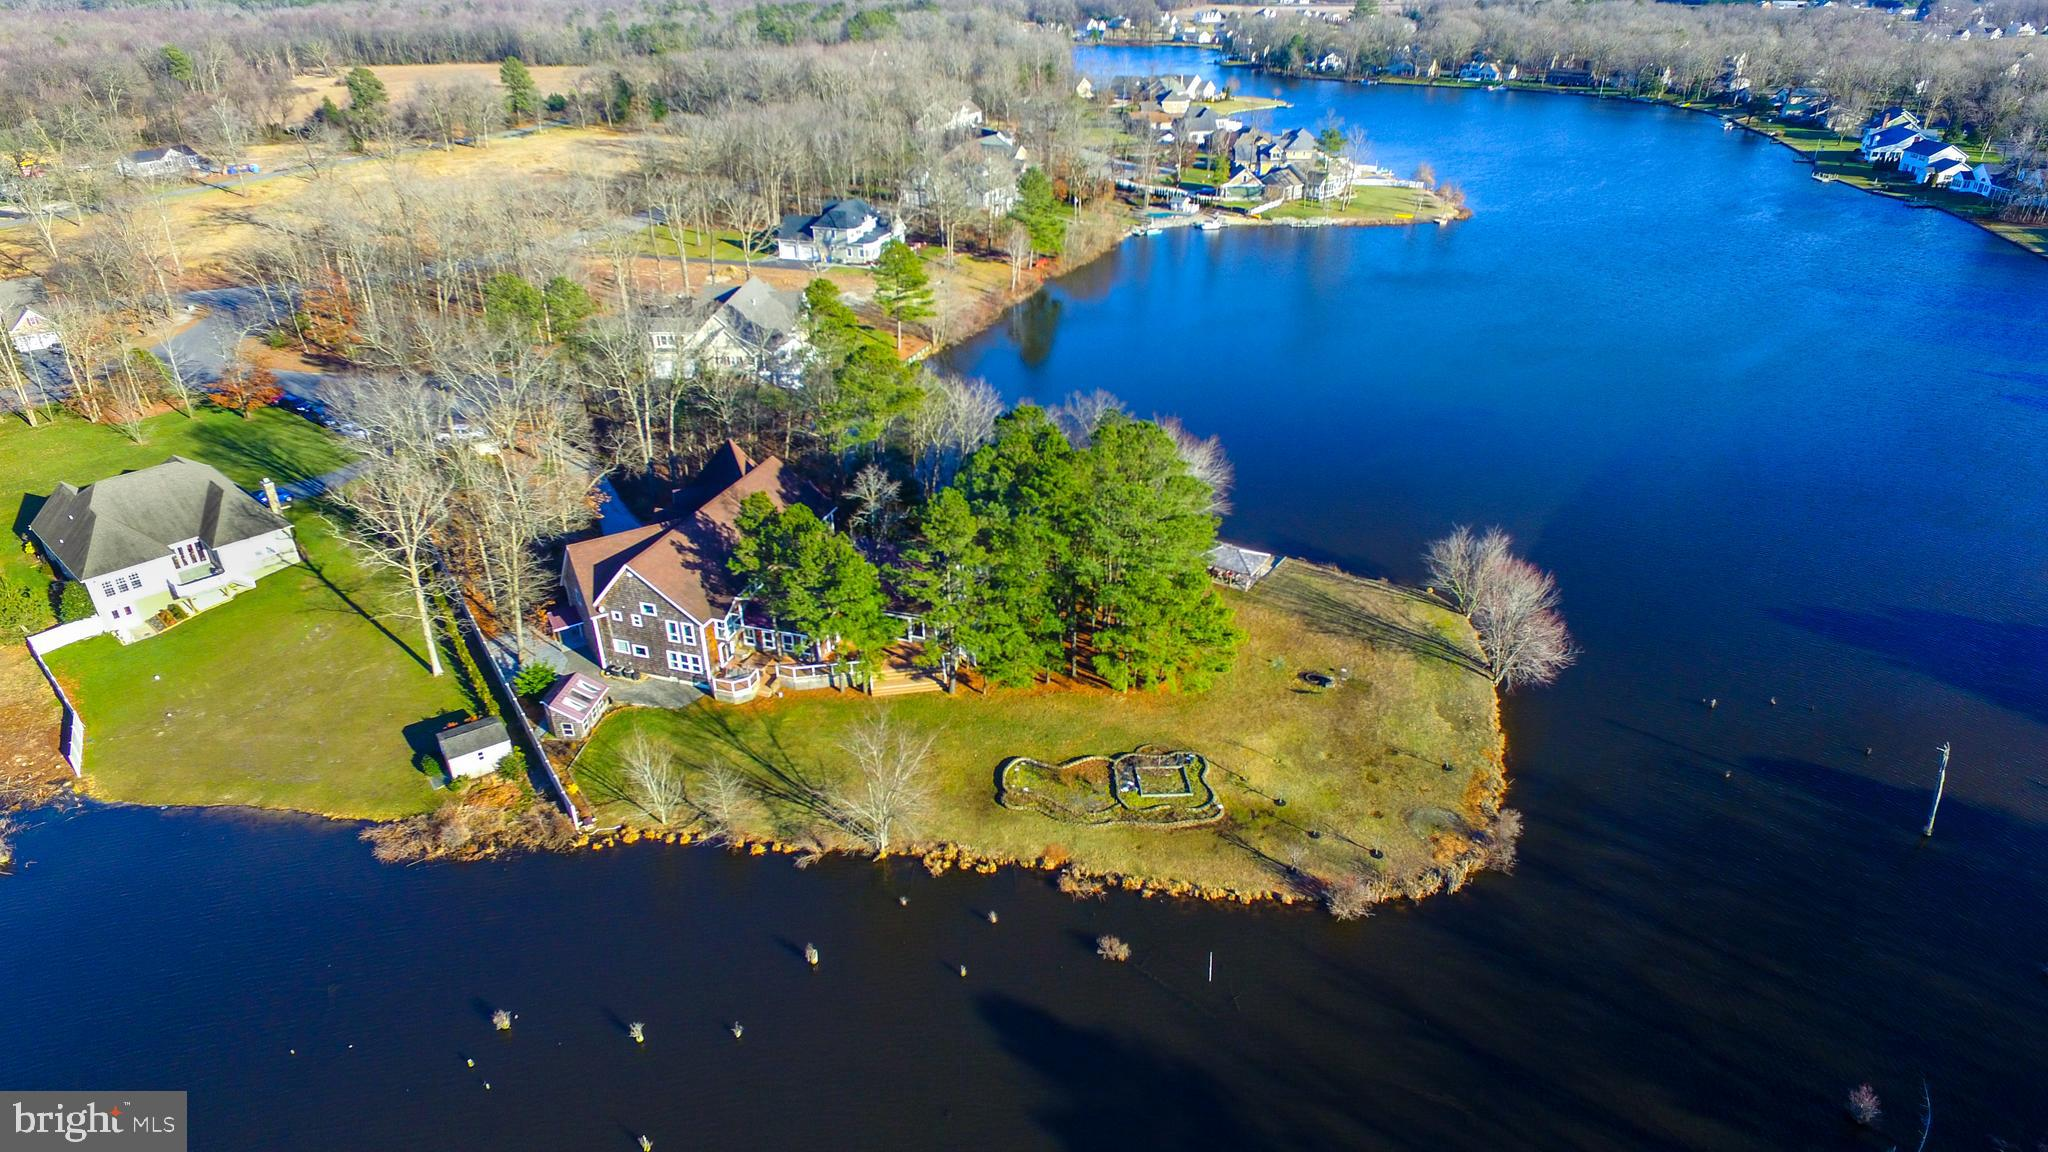 Breathtaking custom built waterfront retreat on a wooded one-and-a-half acre. Step into the gracious foyer that leads to the centerpiece dining room. The great room boasts 24 foot ceilings, wood burning fireplace and expansive natural views. The chefs kitchen is adjoined by a sunroom with gas grill and a walk-in pantry with refrigerator. First floor owners suite with luxury bath and outdoor hot tub on the wraparound deck. Luxurious touches throughout including an endless pool, polished porcelain flooring, mahogany, beech, bloodwood, cherry and rosewood finishes, waterside gazebo and greenhouse. Ascend the curved stairway to the library, a light-filled bedroom, and two suites, one with a kitchen and separate entrance. The home theatre is complete with lounge seating and new HVAC. Dual two car garages. Realize your dream in this captivating home.